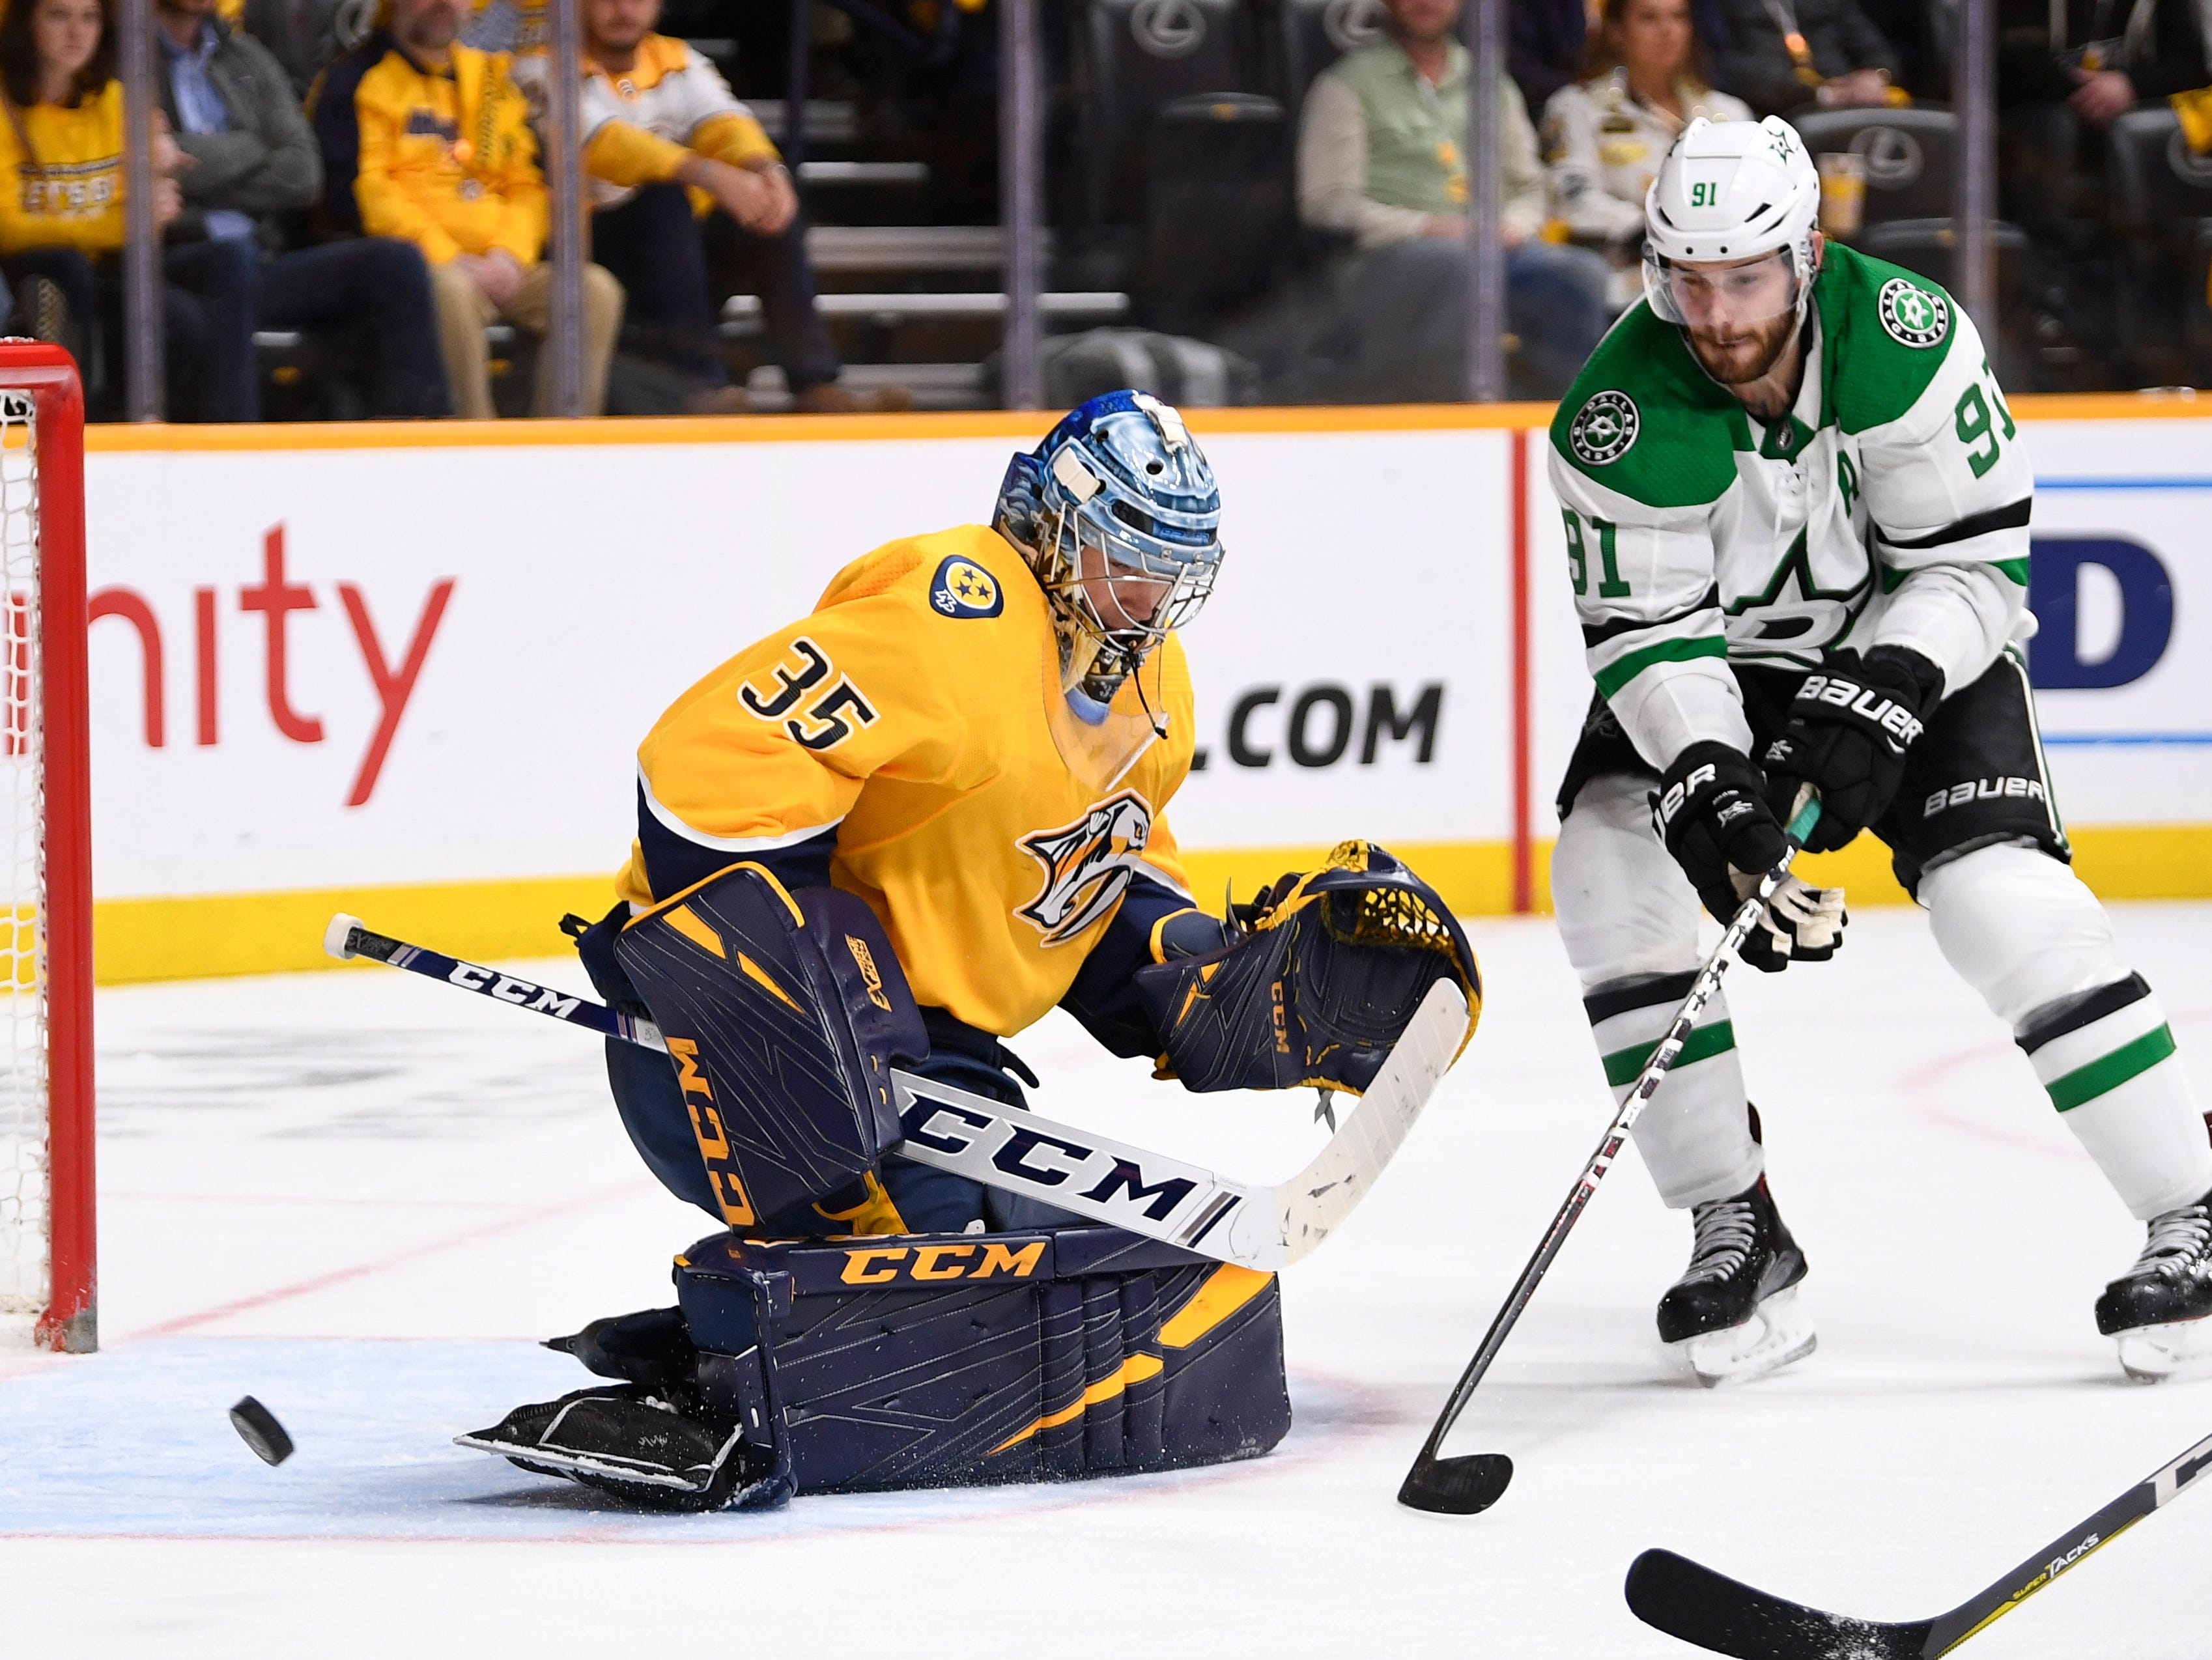 Nashville Predators goaltender Pekka Rinne (35) and Dallas Stars center Tyler Seguin (91) watch the puck go wide during the second period of the divisional semifinal game at Bridgestone Arena in Nashville, Tenn., Wednesday, April 10, 2019.